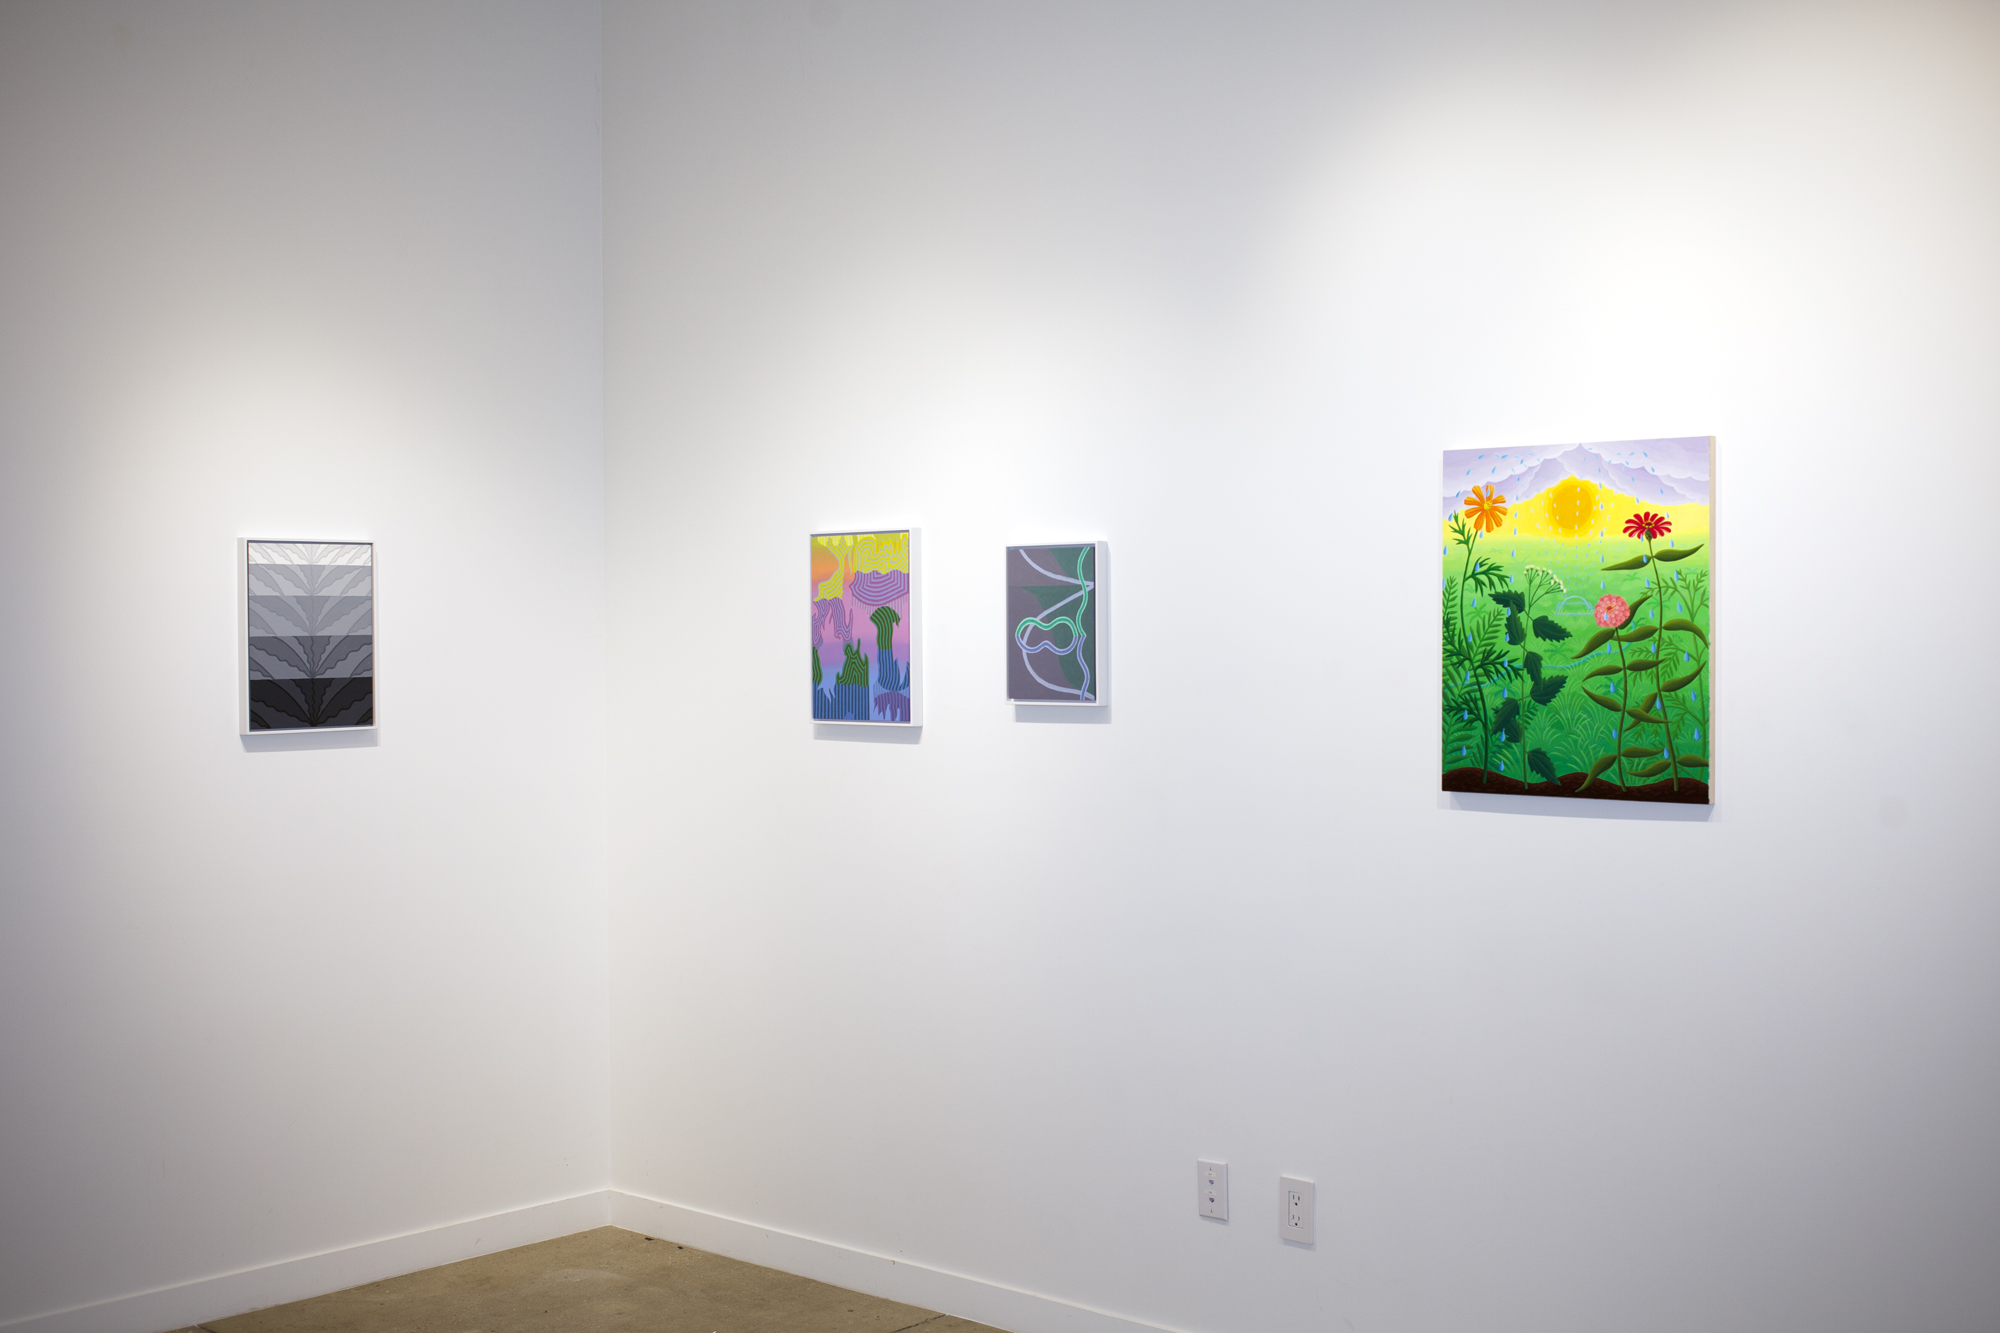 From left to right:  Caetlynn Booth,  Splash Study , 2017, oil on paper, 17 x 13 inches framed Caetlynn Booth,  Sunrise Study 2 , 2019, oil on paper, 17 x 13 inches framed Caetlynn Booth,  Synchronized Mirror II , Study 1, 2018, oil on paper, 13 x 10 inches framed Amy Lincoln,  Sprinkler with Wildflowers , 2018, acrylic on panel, 24 x 20 inches